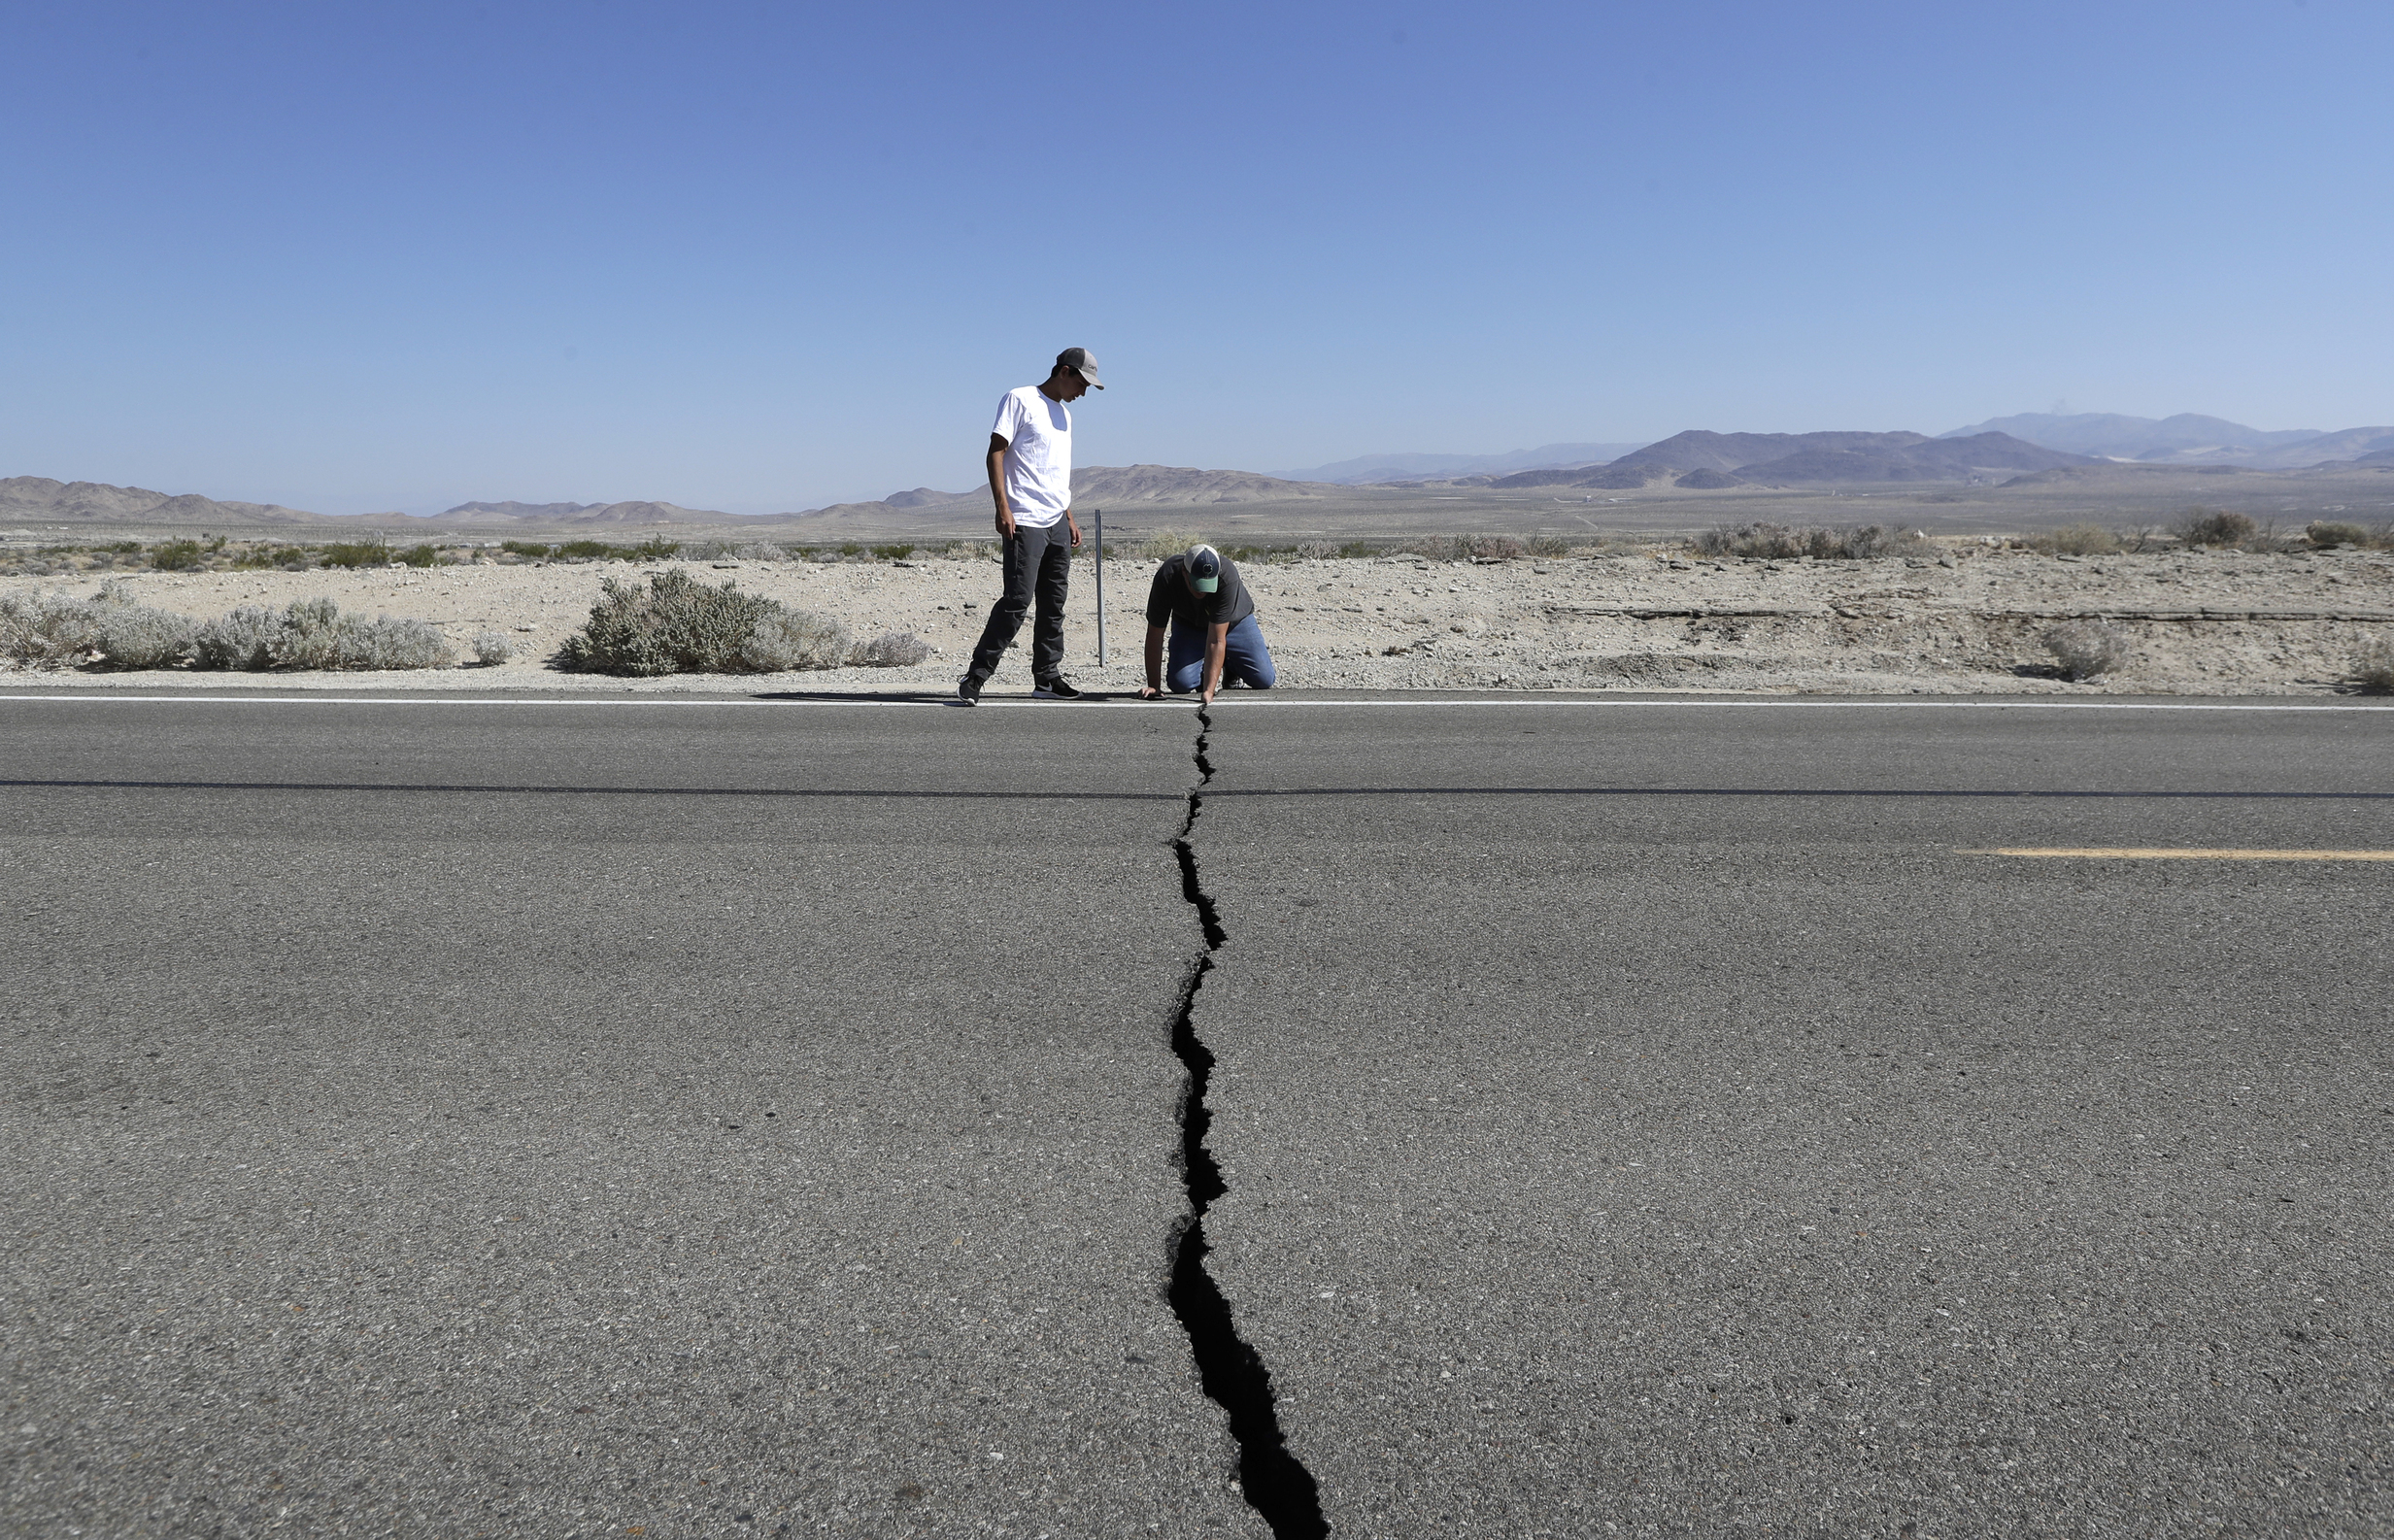 LA's early warning app will now send alerts for magnitude 4.5 earthquakes